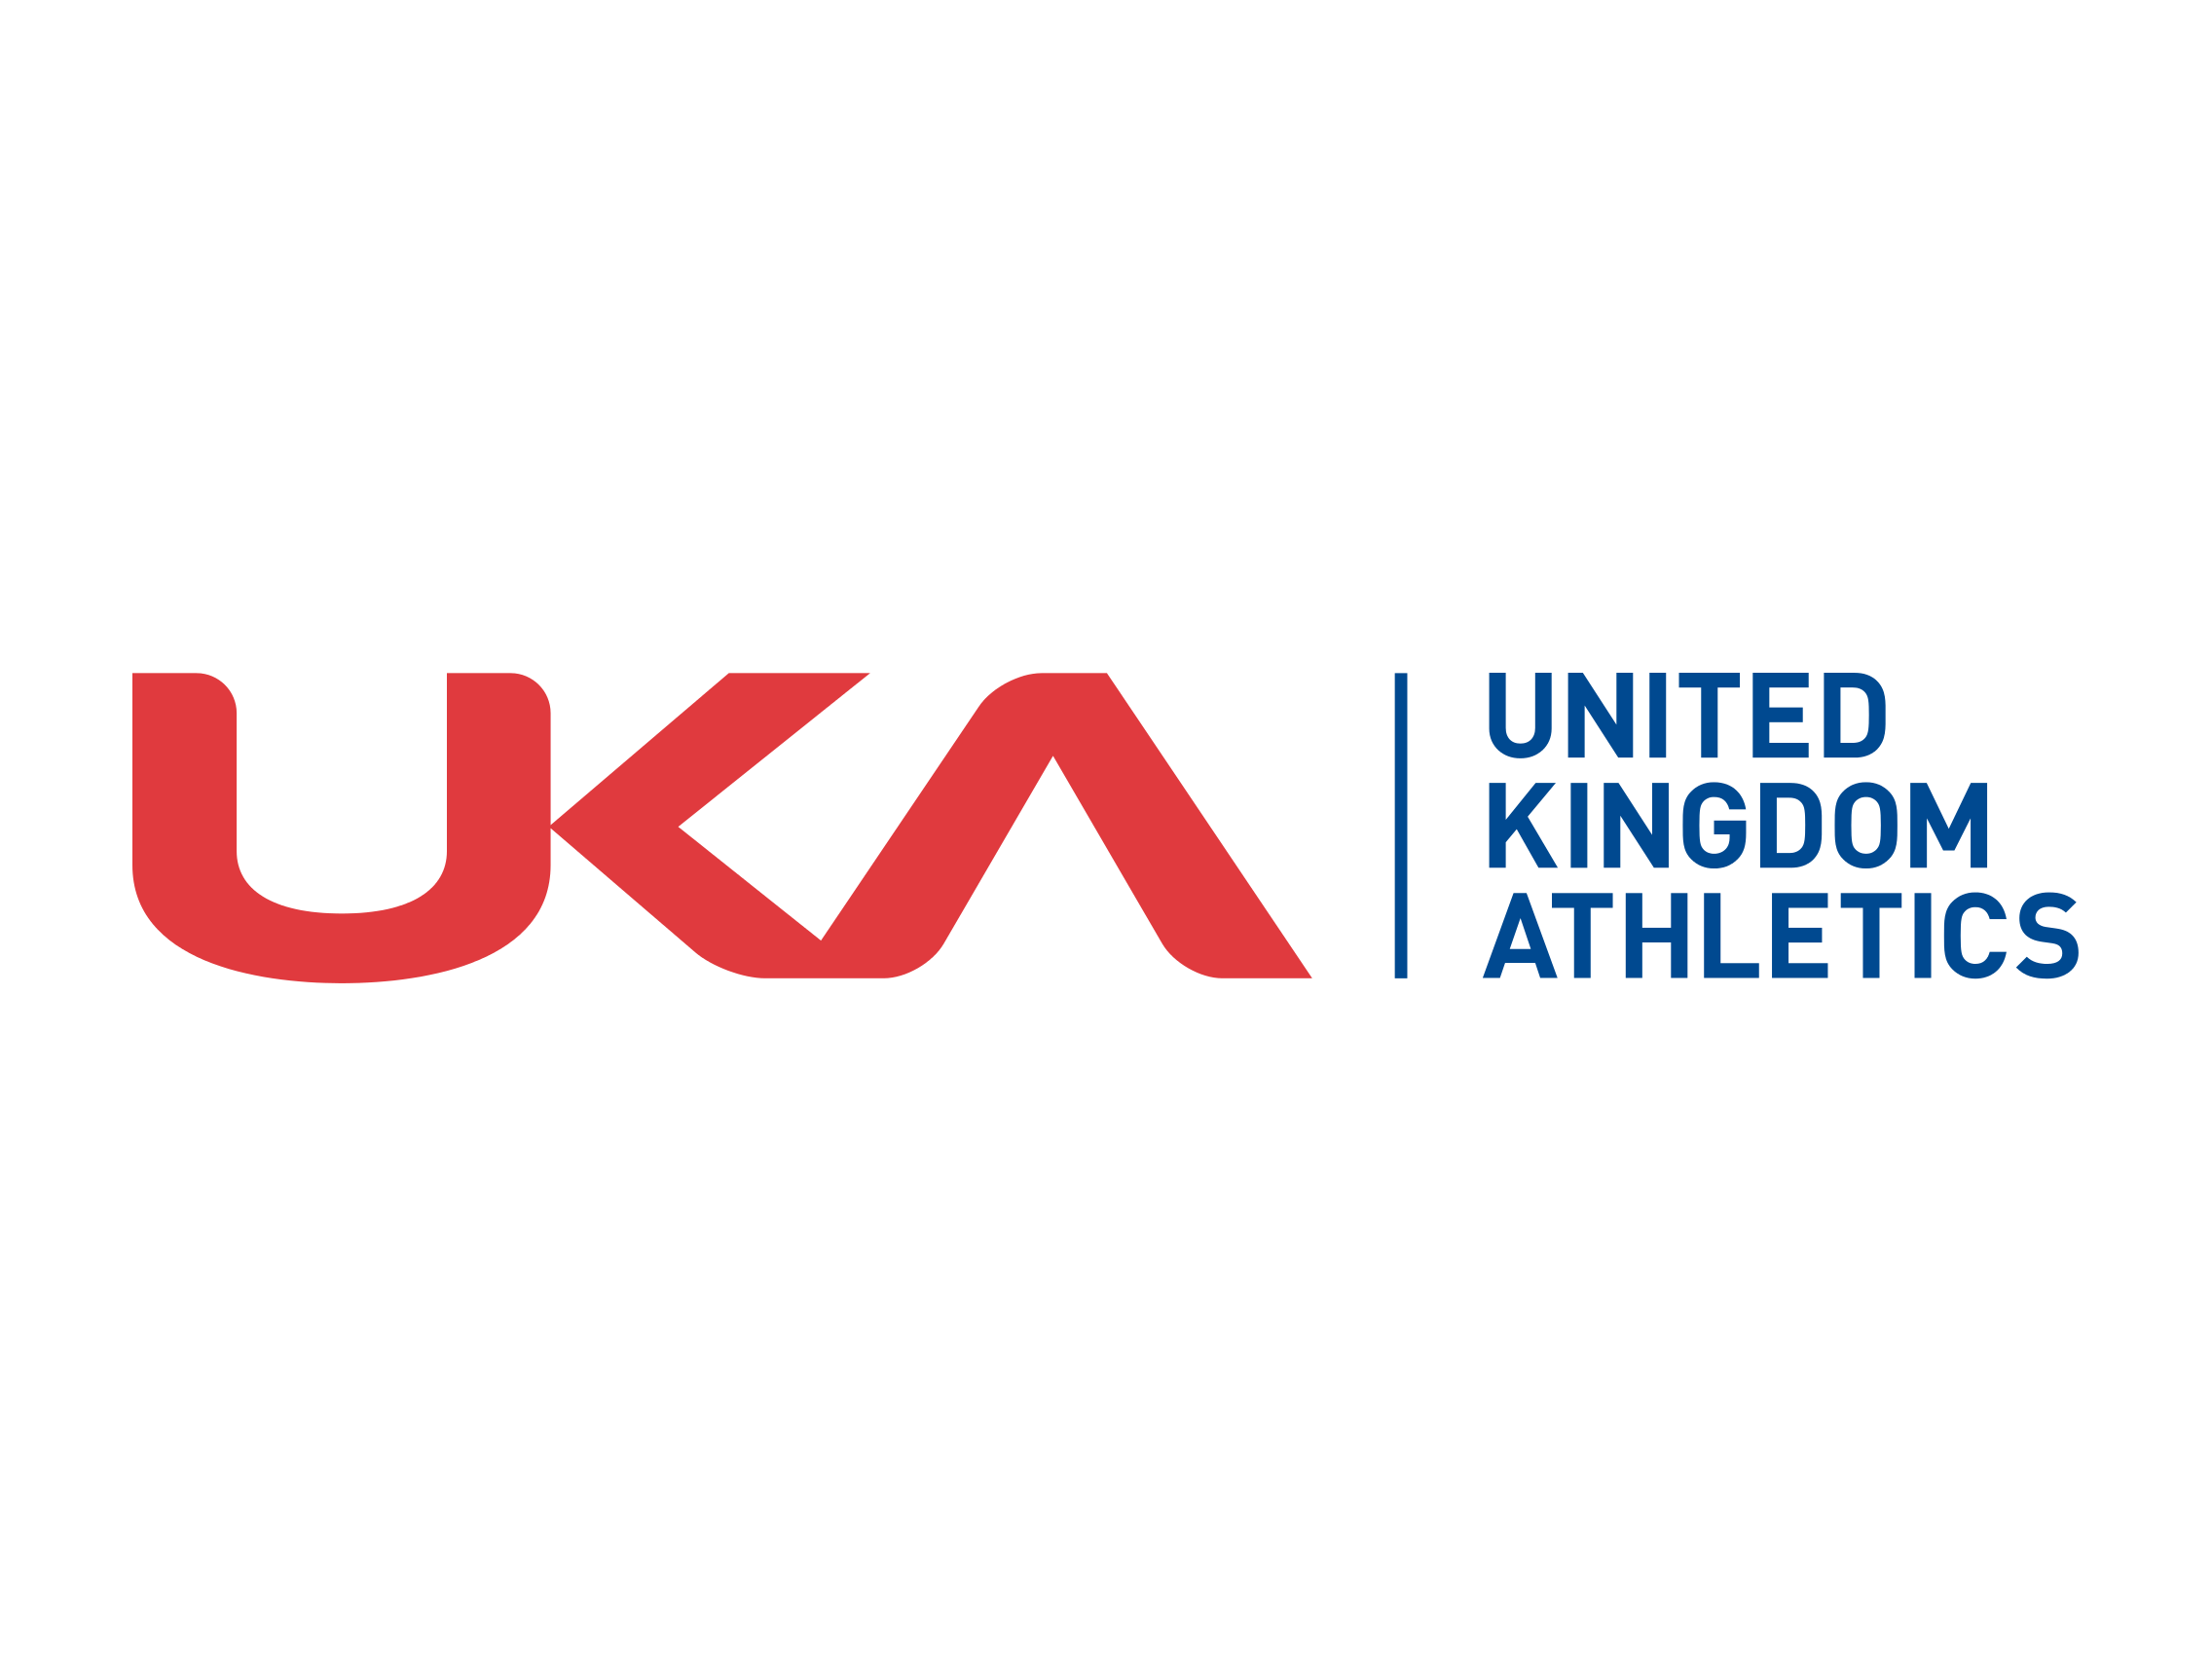 United Kingdom Athletics